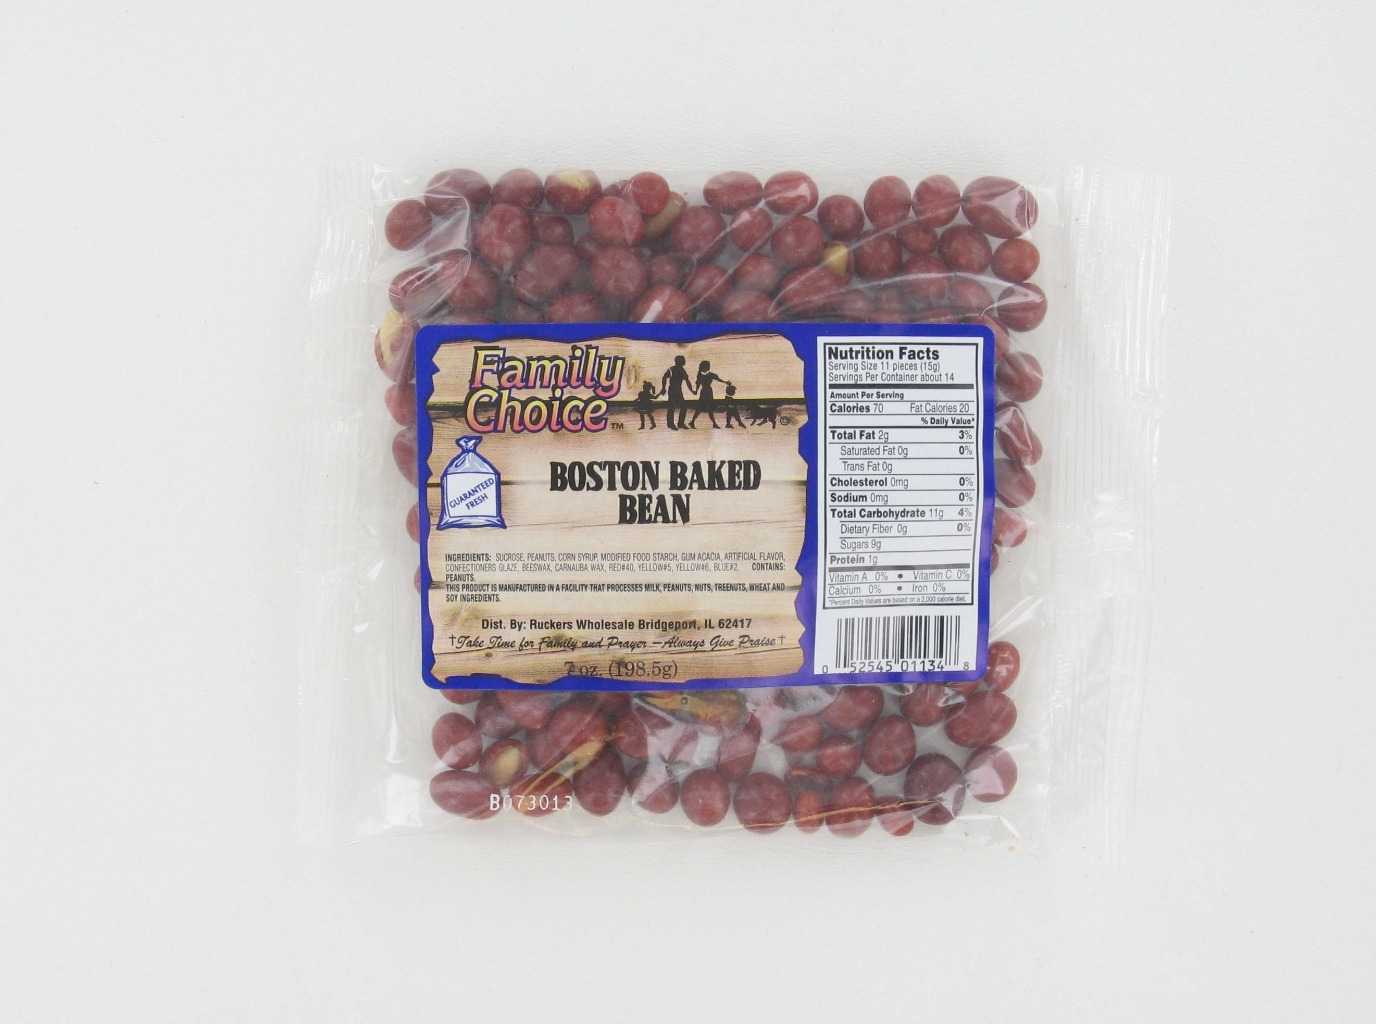 Boston Baked Beans 7 oz